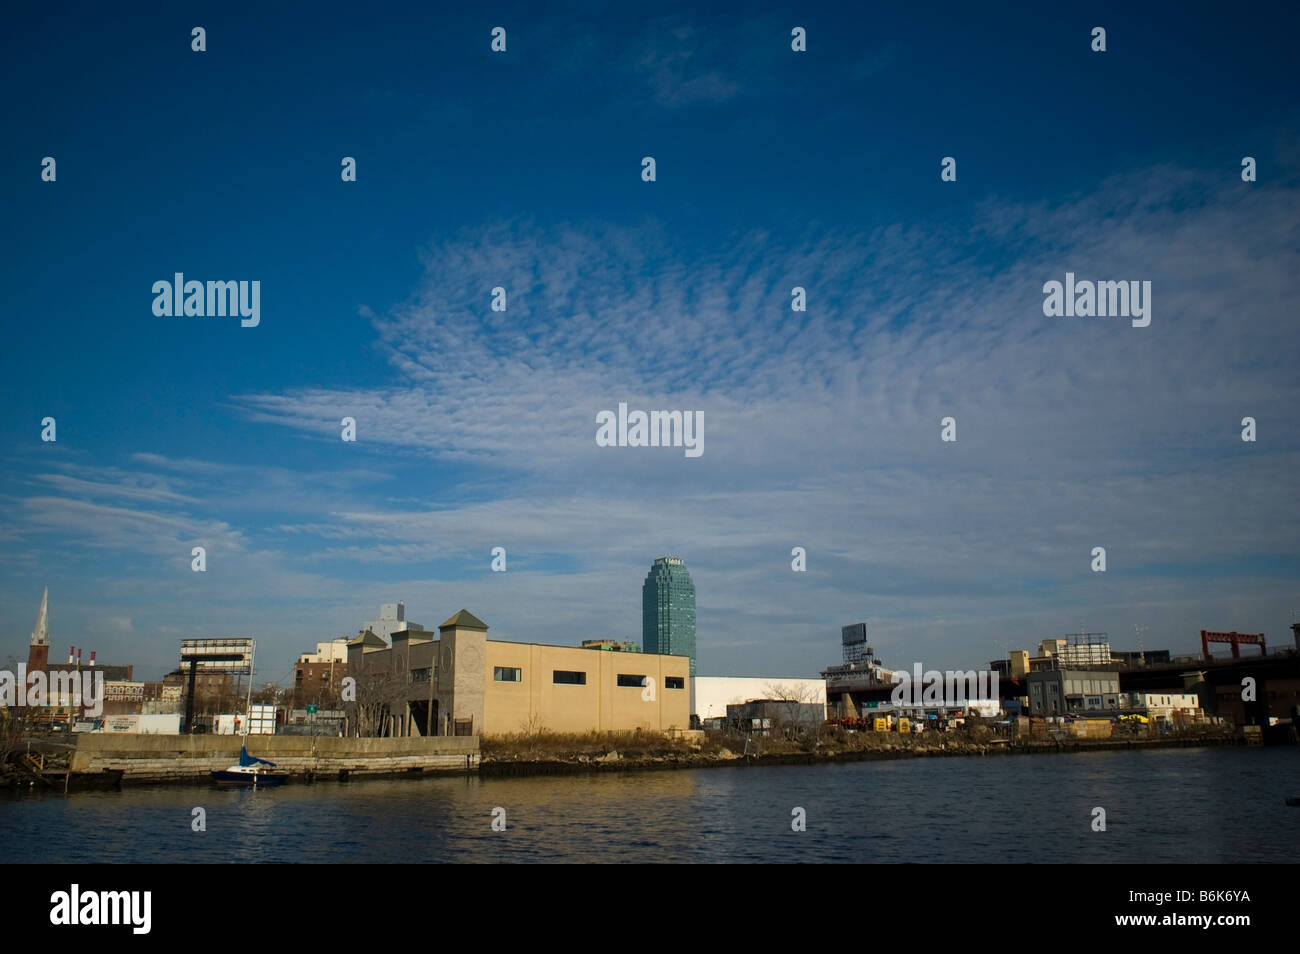 Newtown Creek an industrial waterway separating the boroughs of Brooklyn and Queens in New York - Stock Image